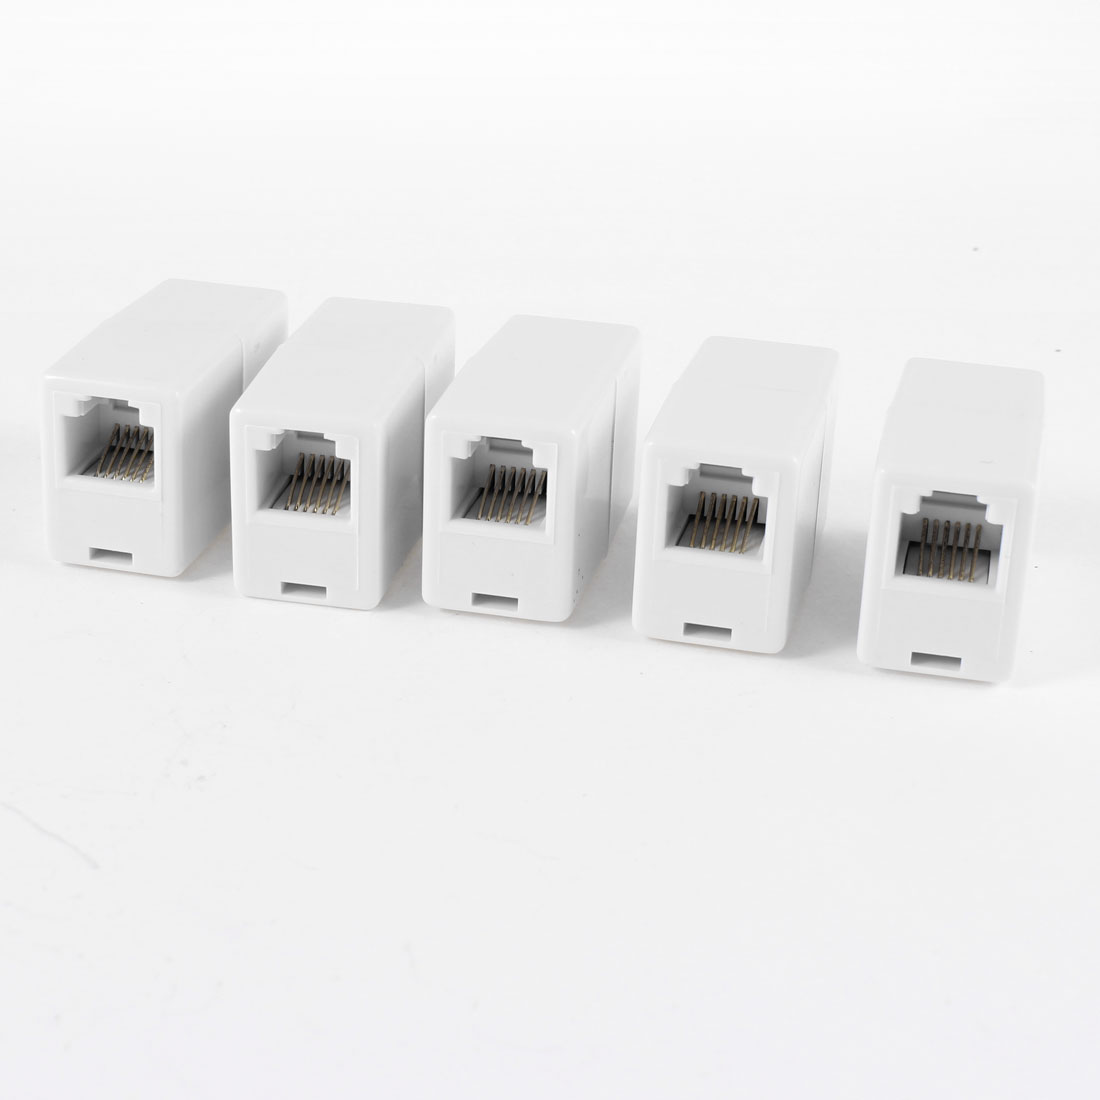 5 Pcs White Plastic Housing RJ11 Female/Female Telephone Cable Inline Connector